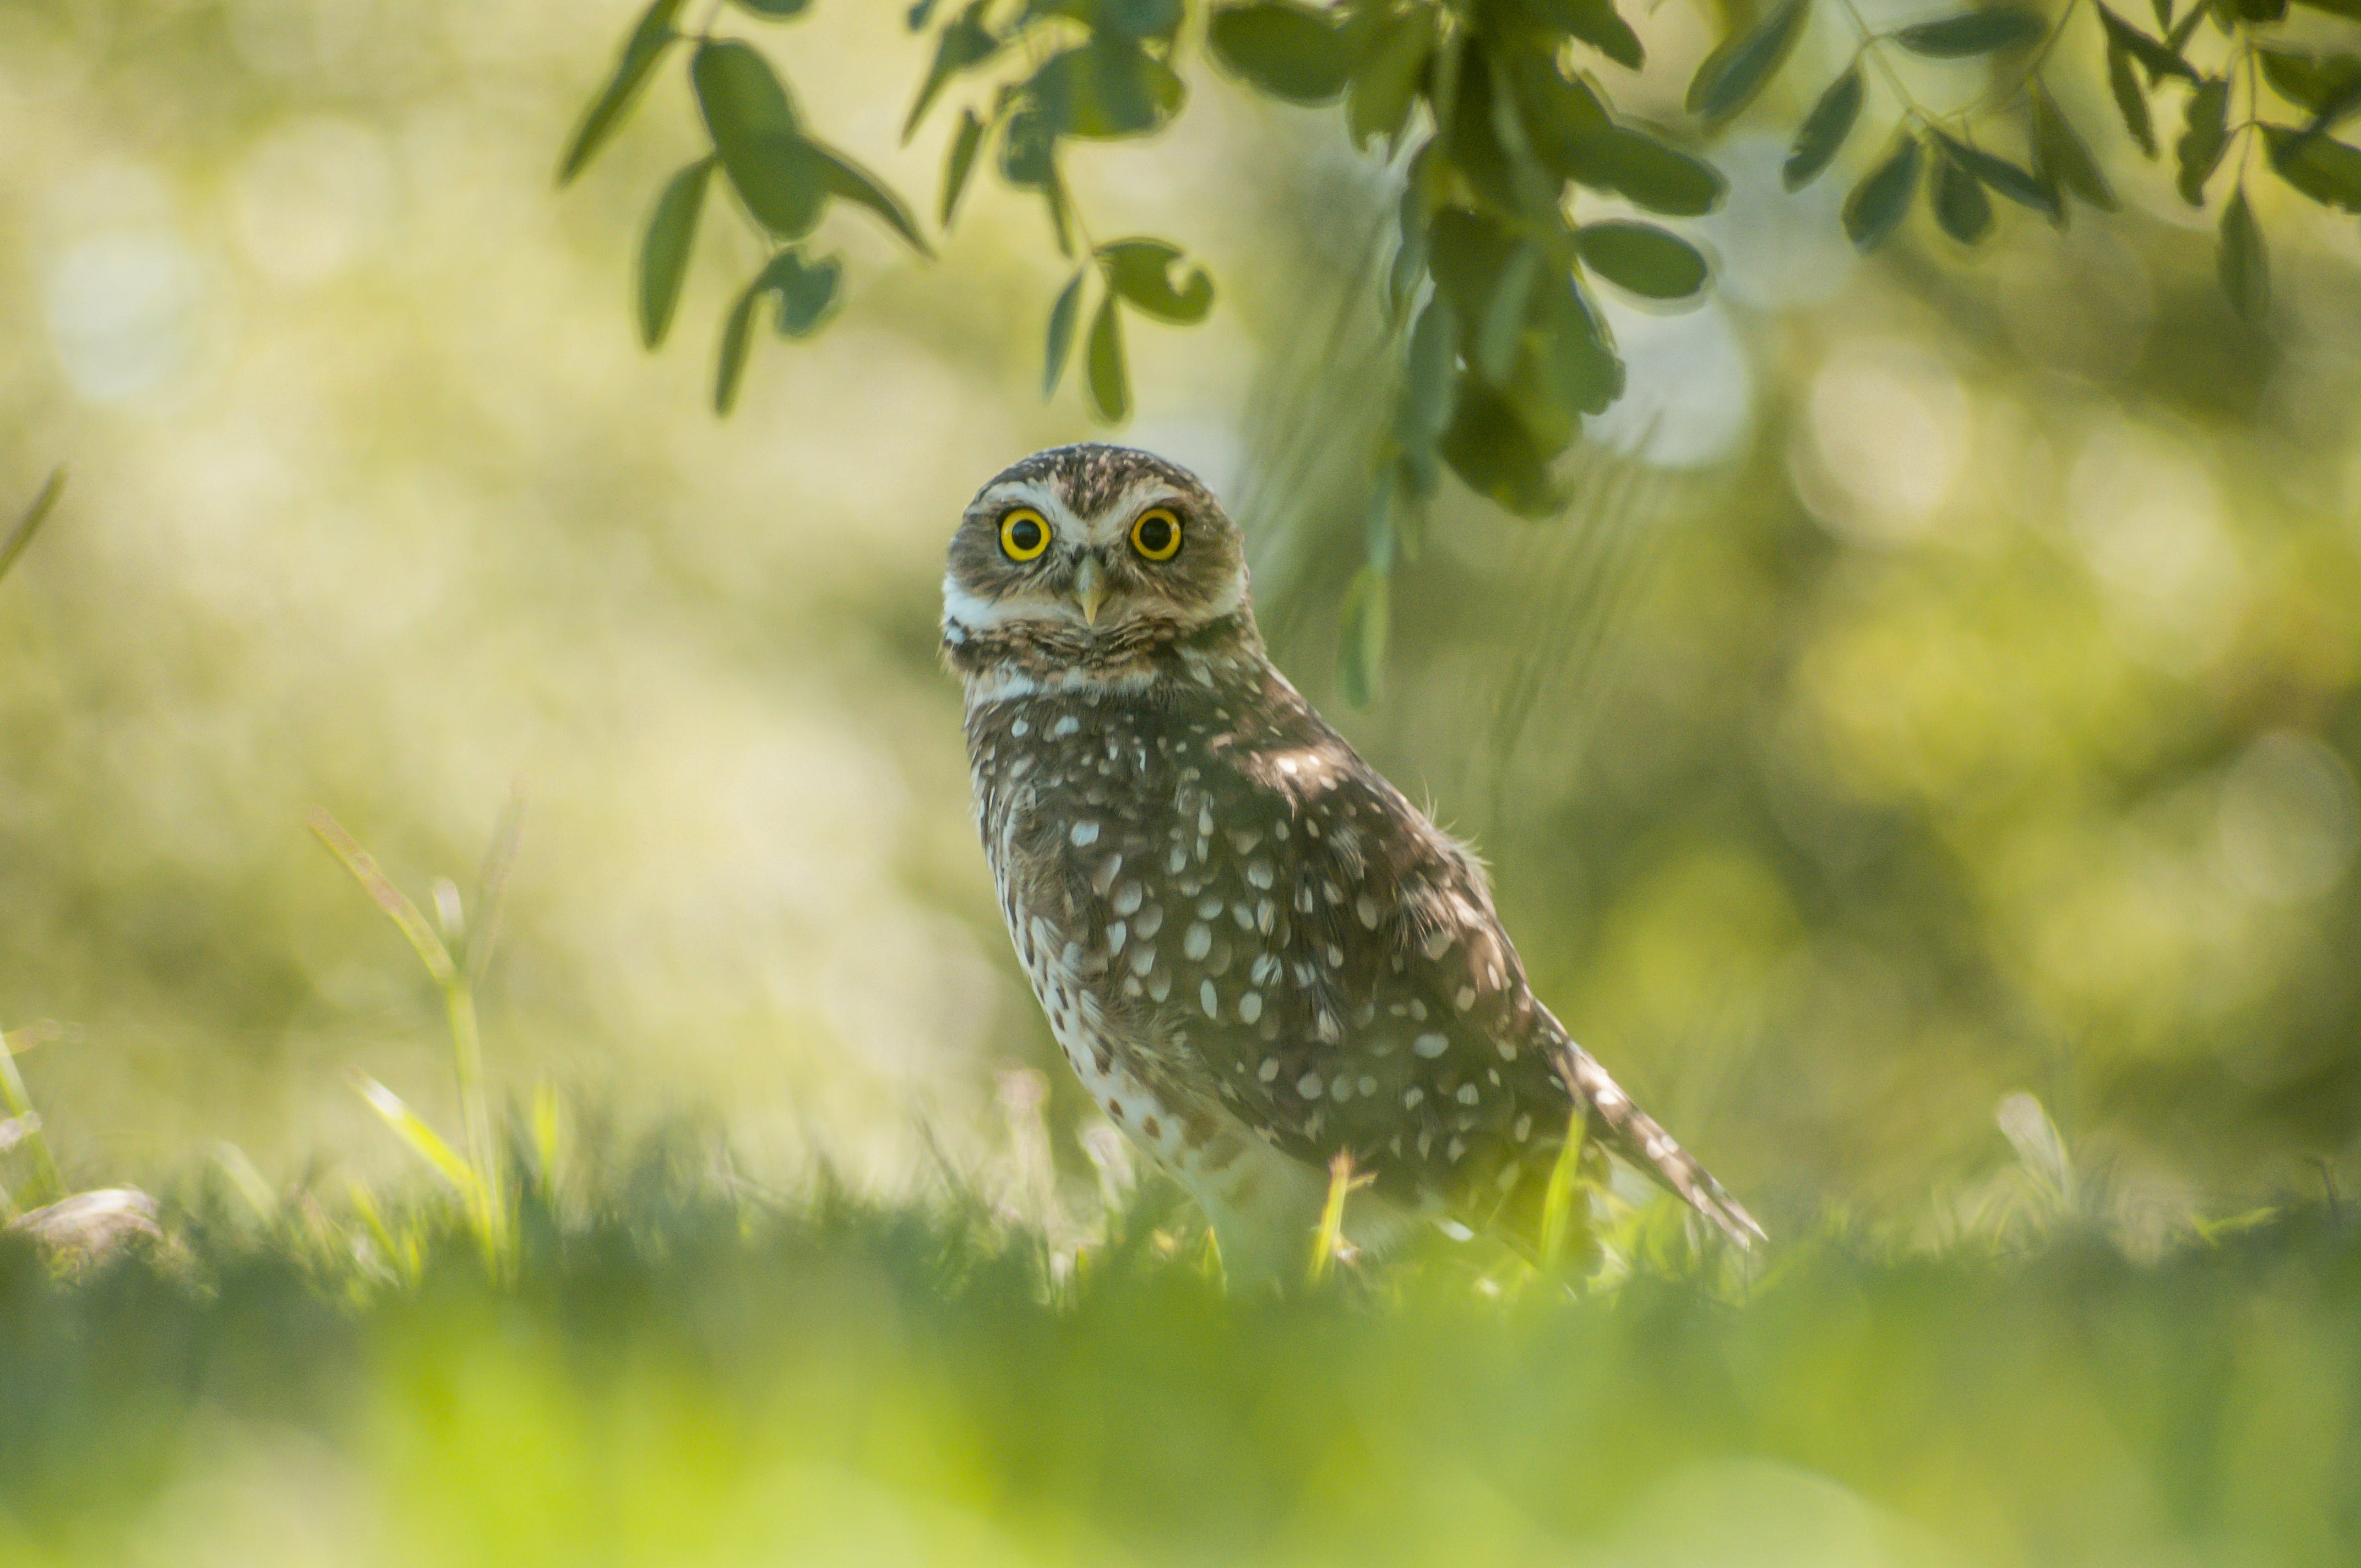 Brown Owl Standing on Grass